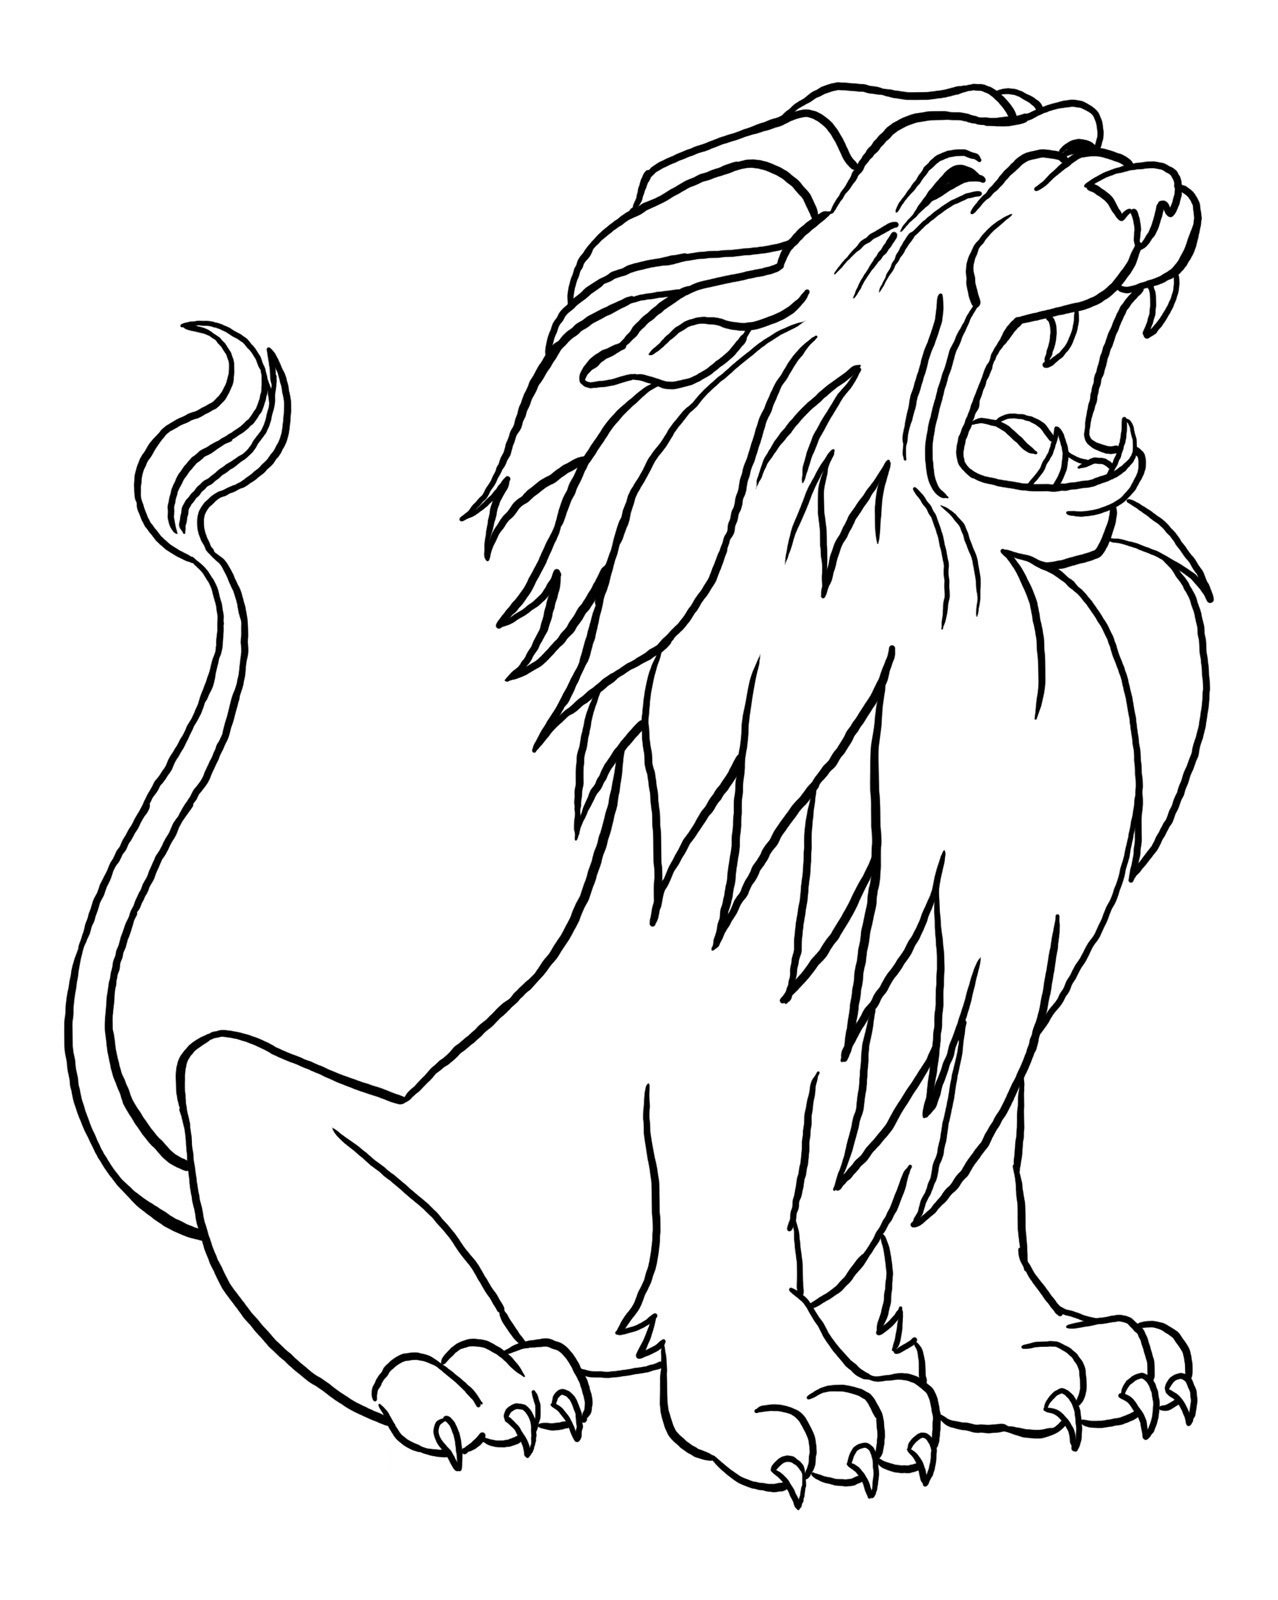 Coloring pages lion - Lion Coloring Pages Kids